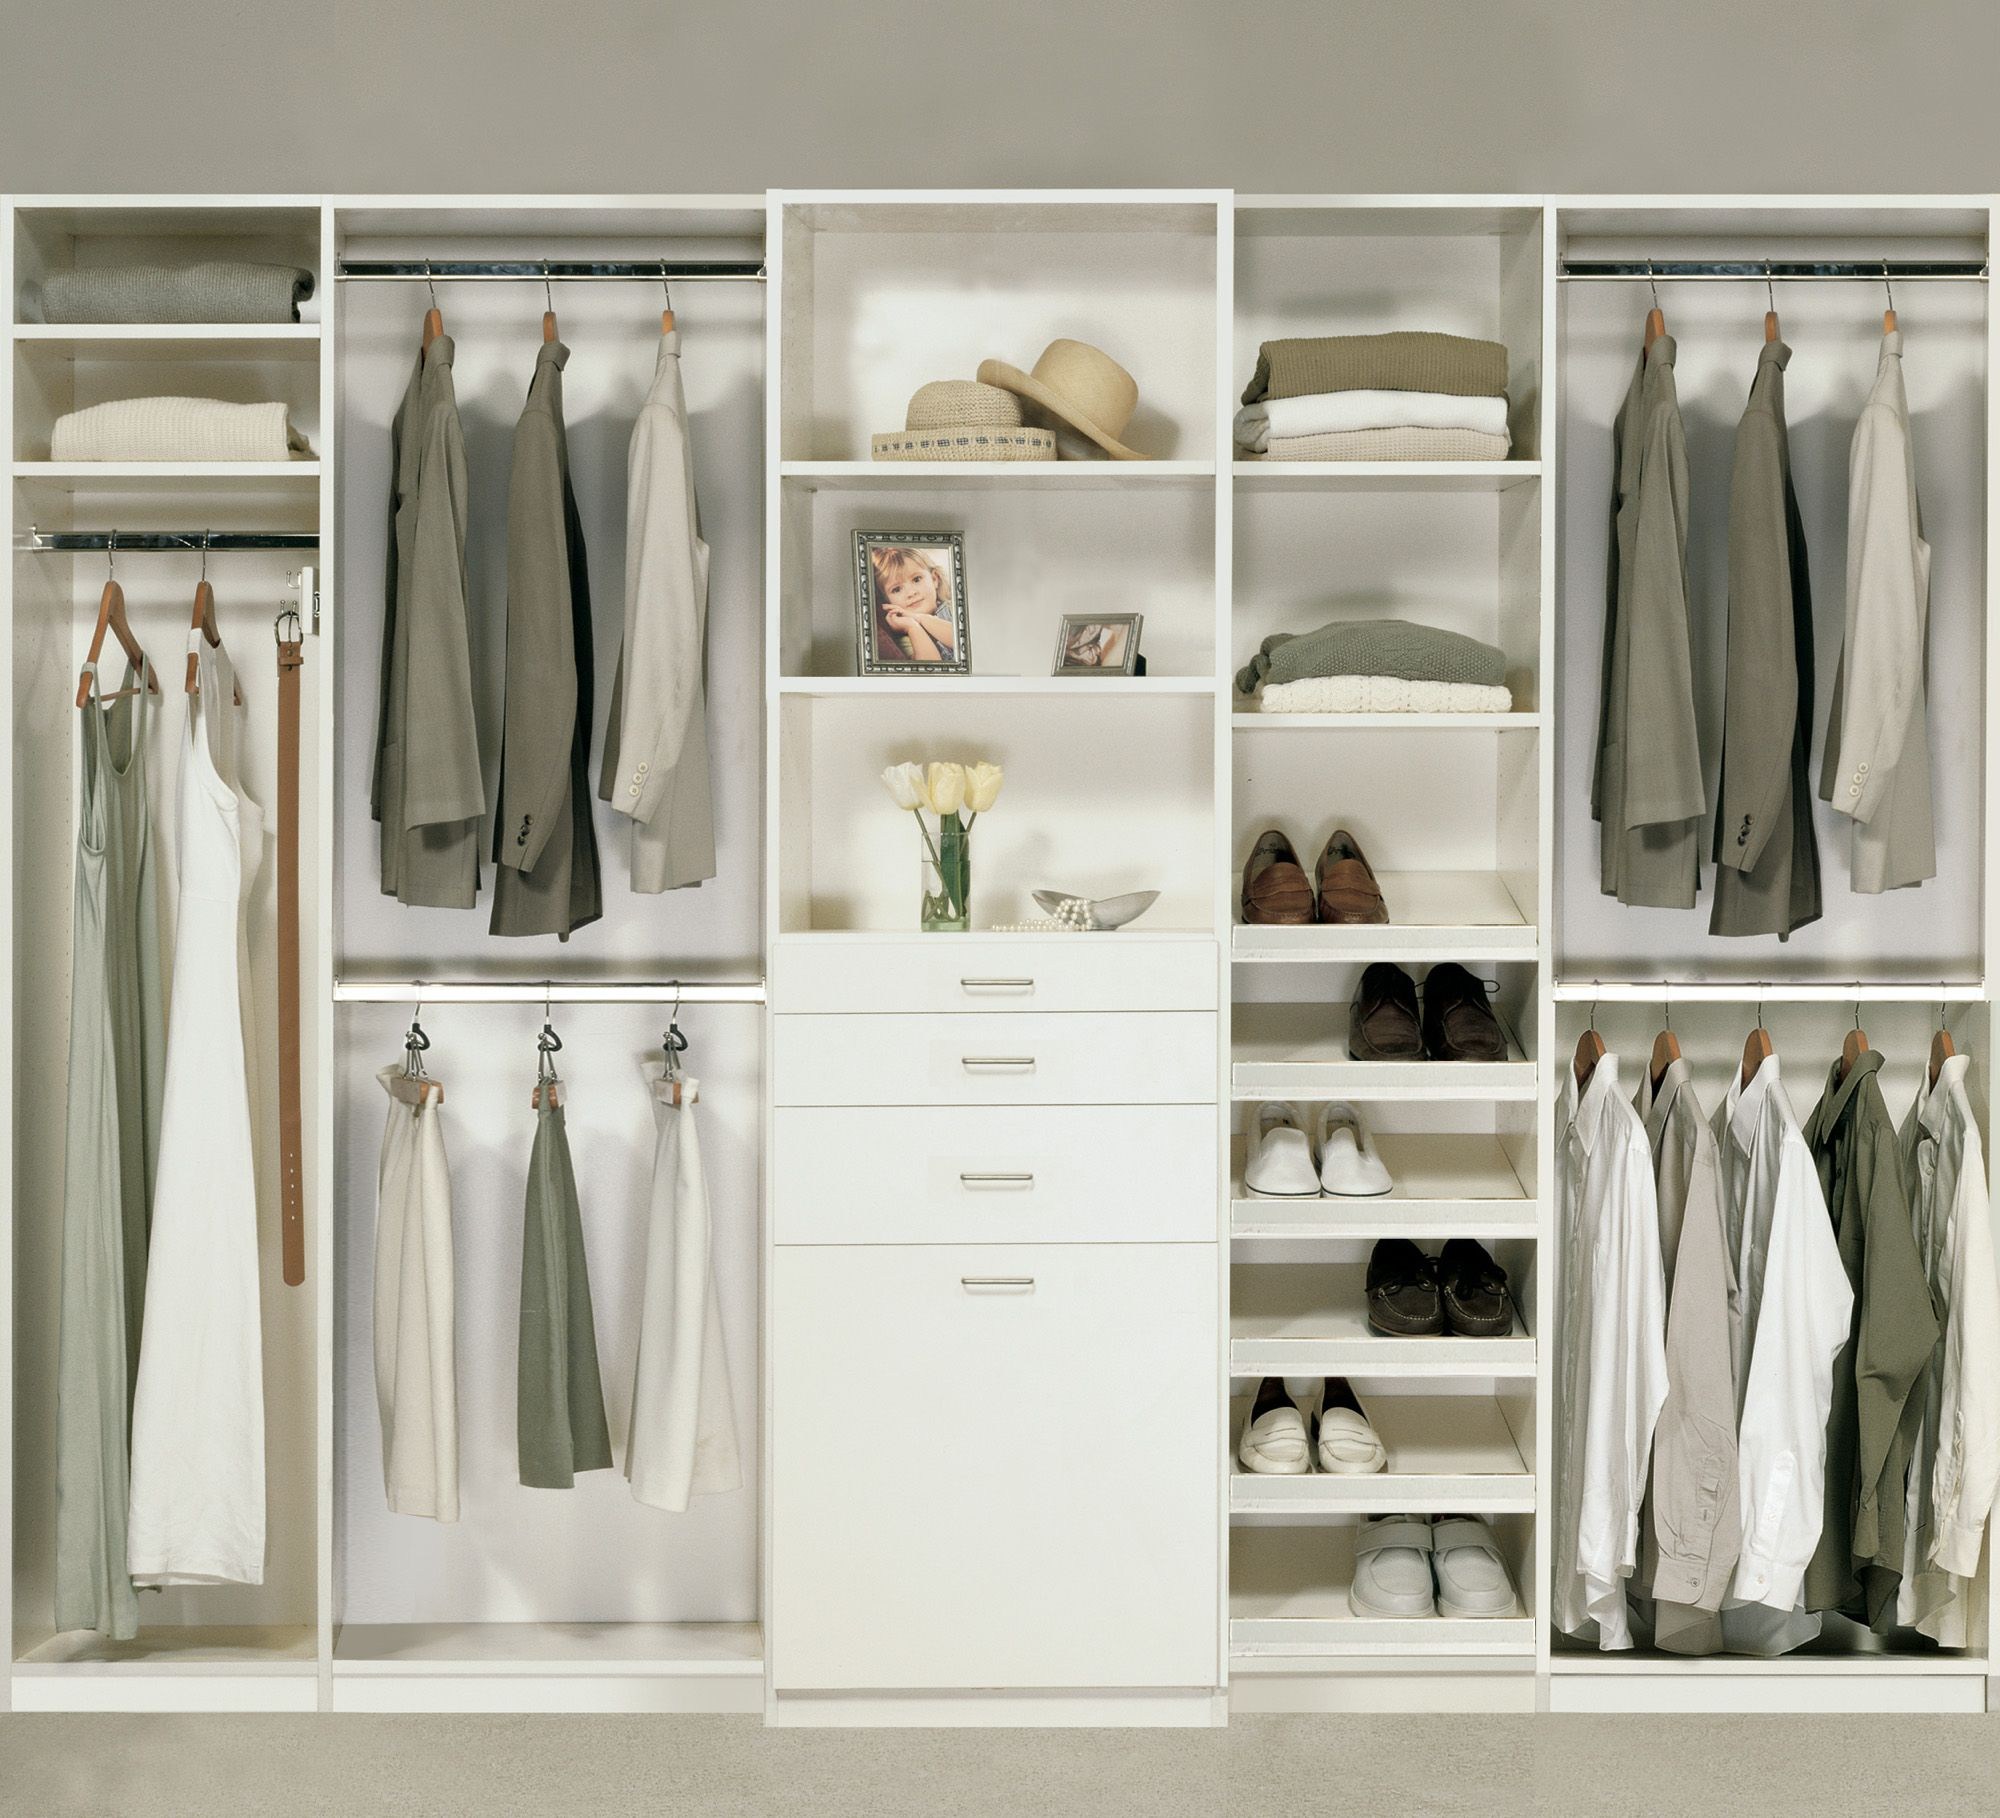 Bedroom Closet In An Antique White Nish Melamine With Tilt Out Hamper Slanted Shoe Shelves And